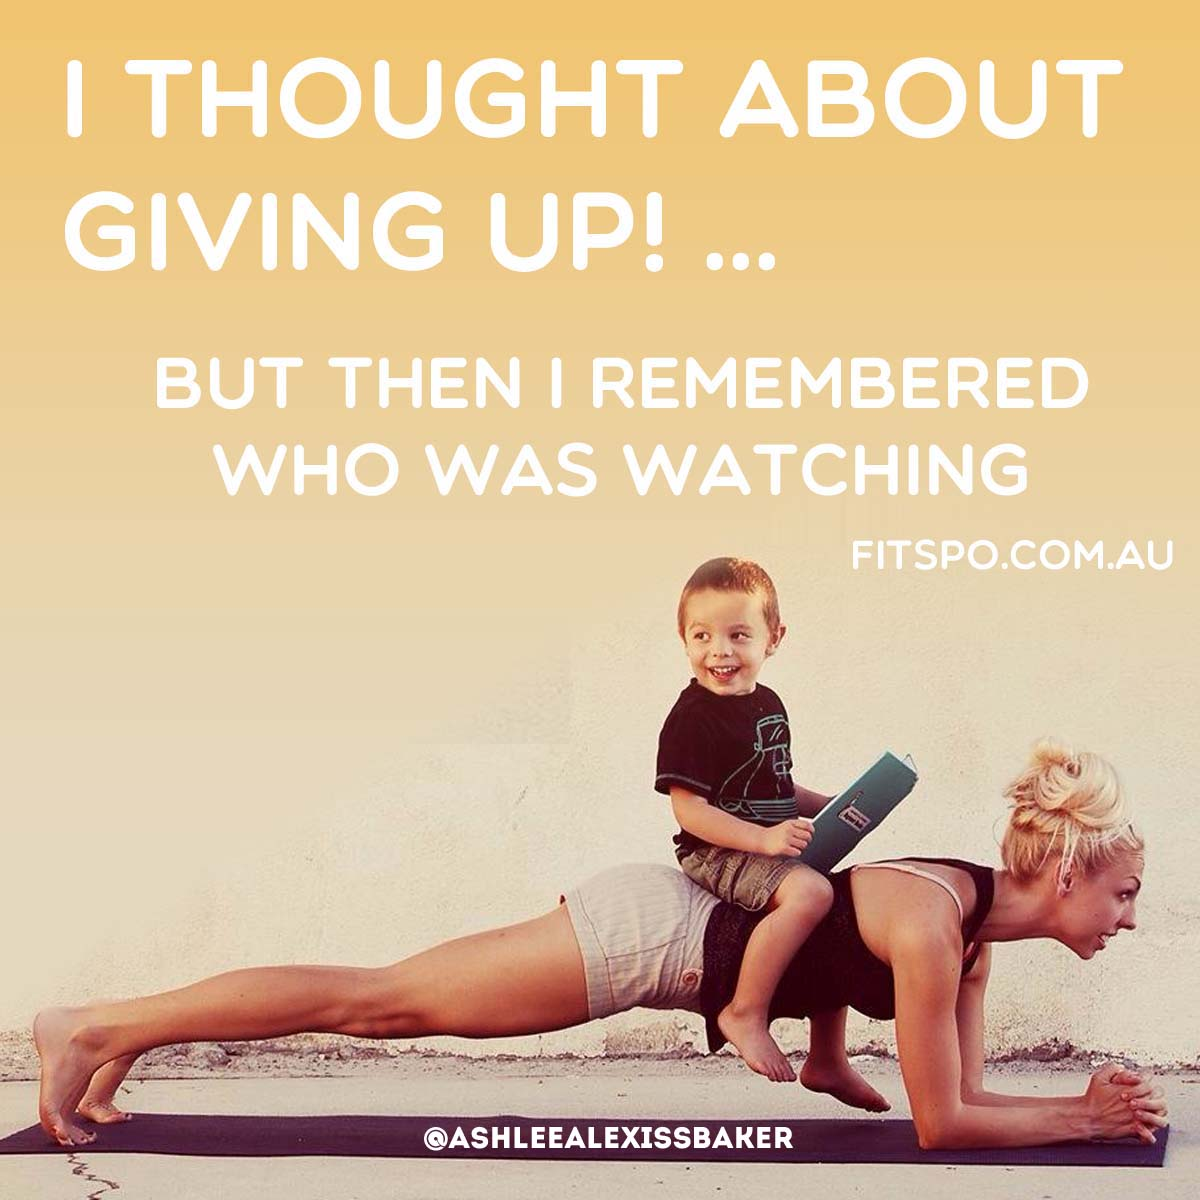 Fitness Sayings  i thought about giving up! but then i remembered who was watching.